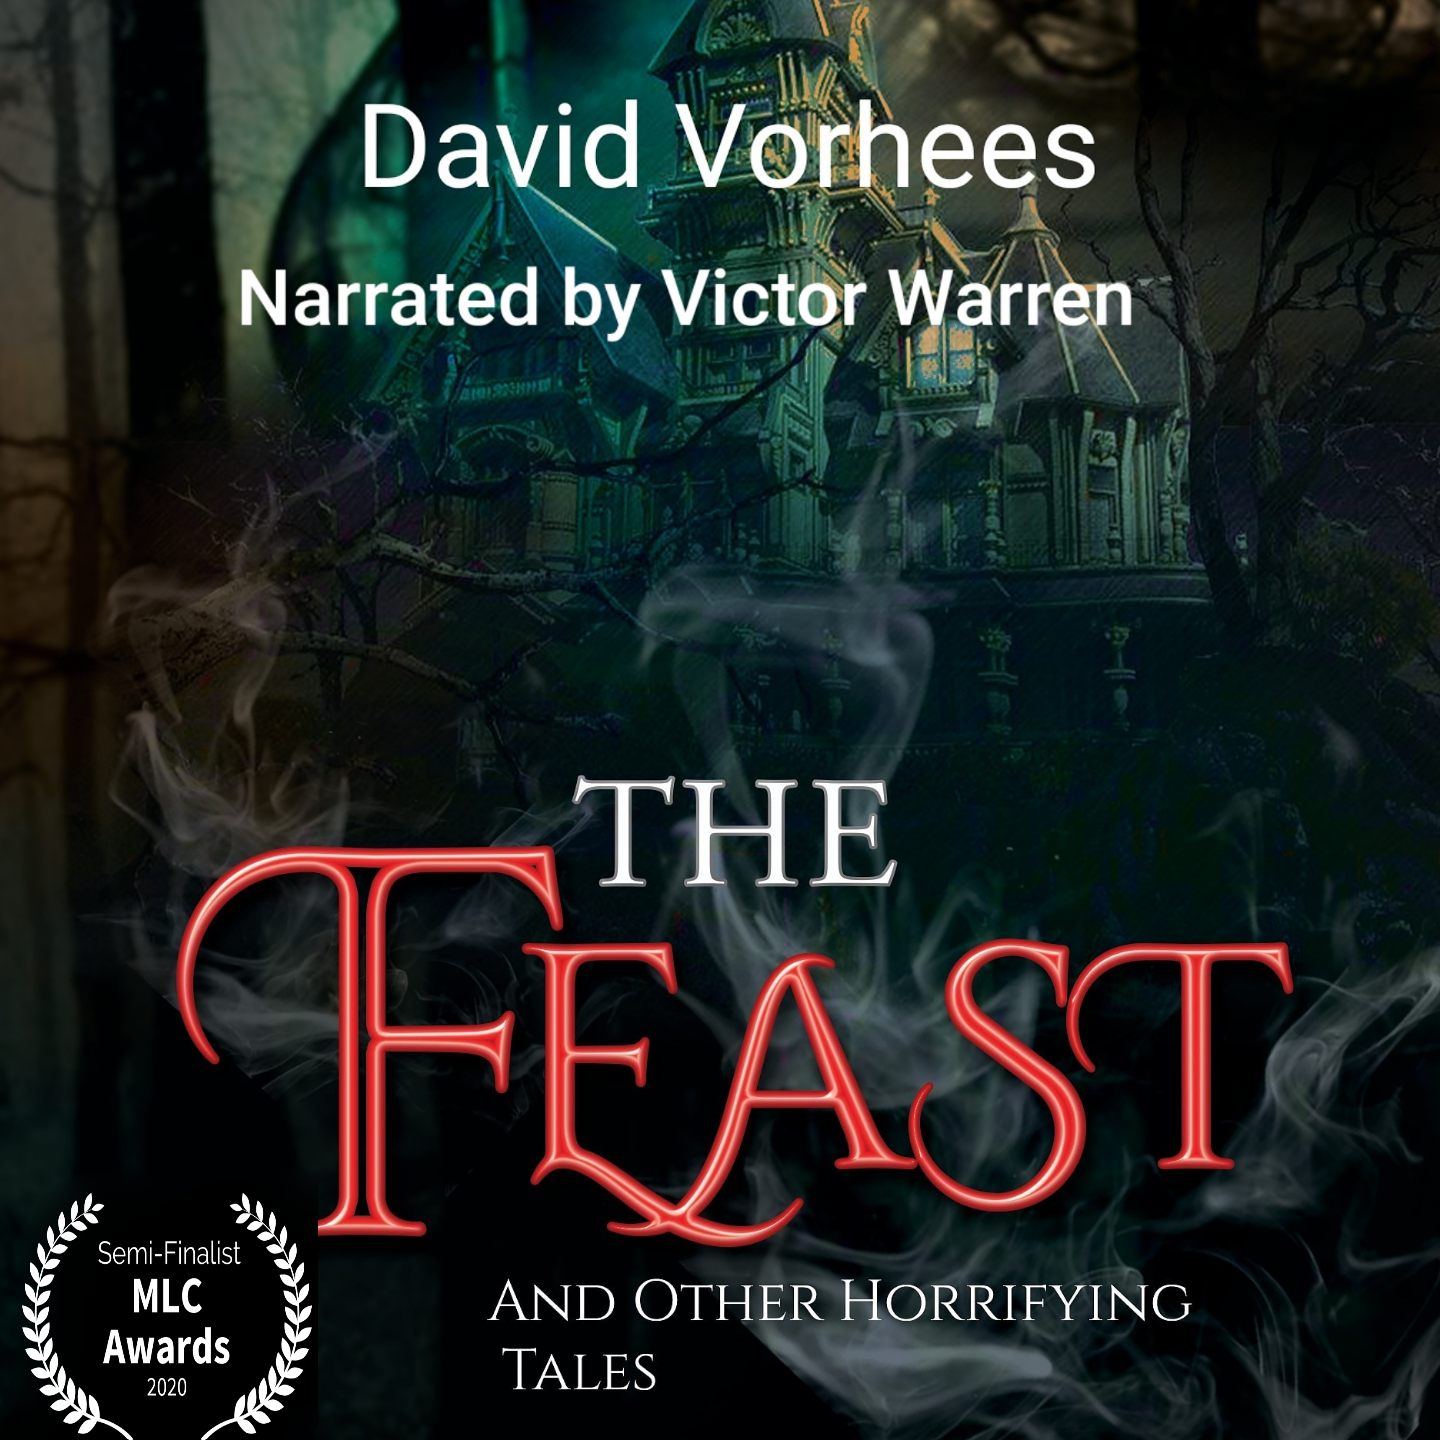 NEW FEAST COVER